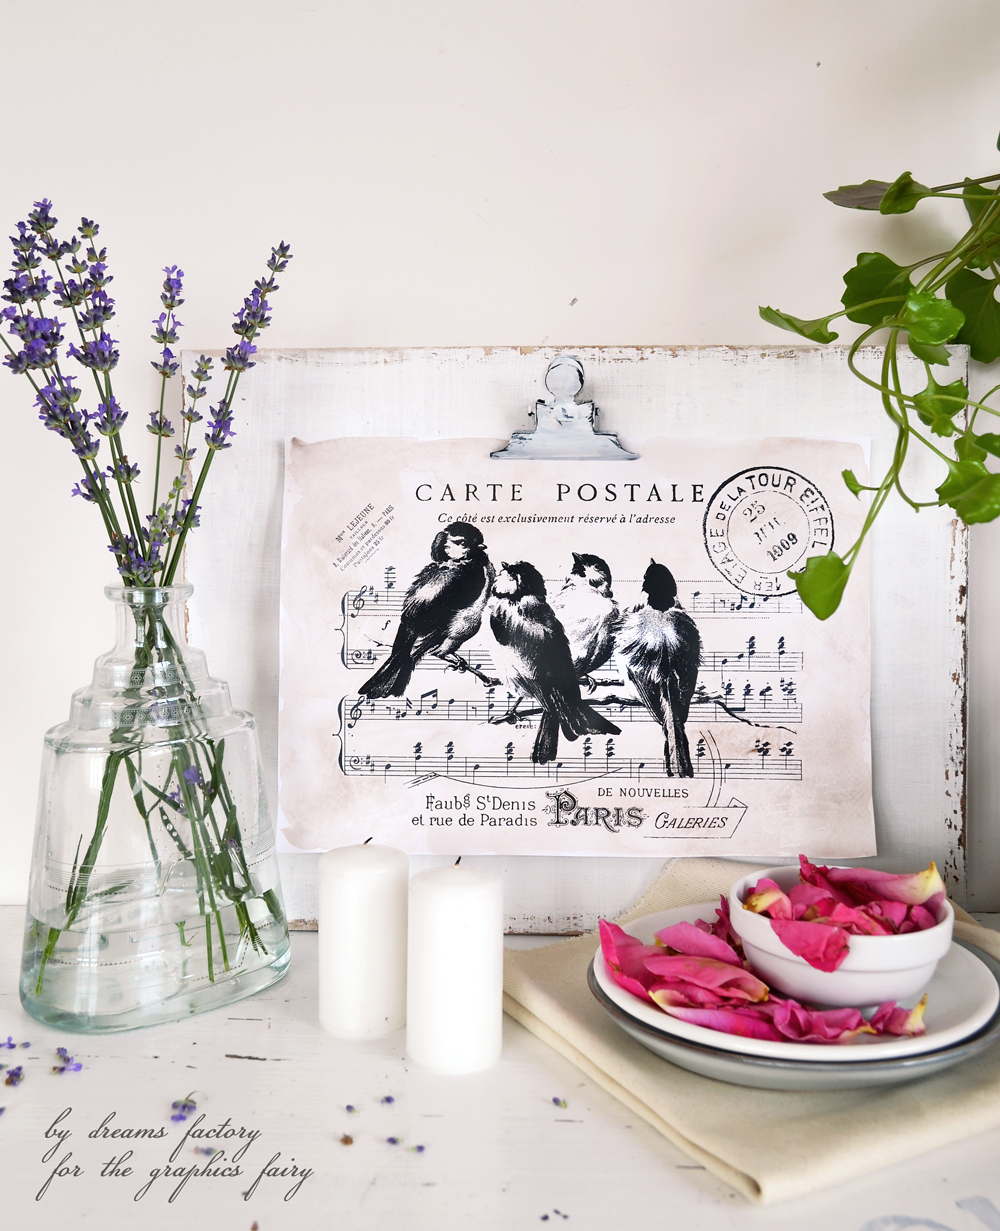 Make this statement item for your home decor - DIY painted and distressed clipboard frame - a highly versatile decorative piece, adaptable to any season - by Dreams Factory